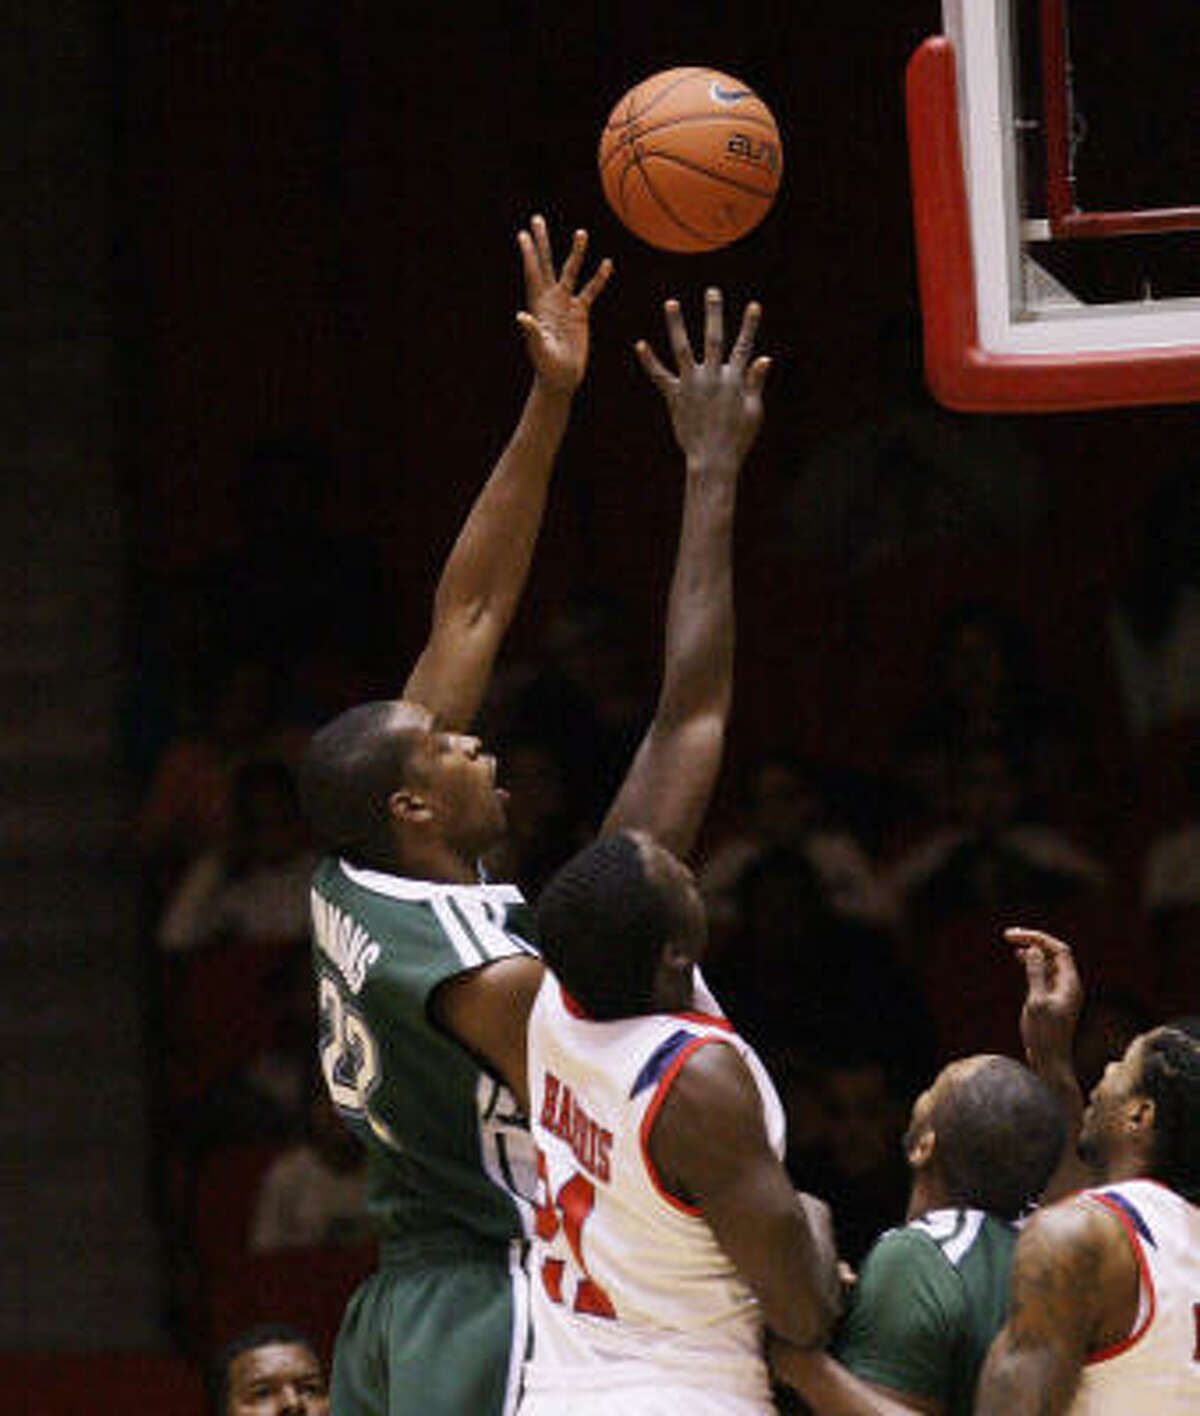 Tulane's Kendall Timmons (22) drives to the basket over UH forward Alandise Harris.